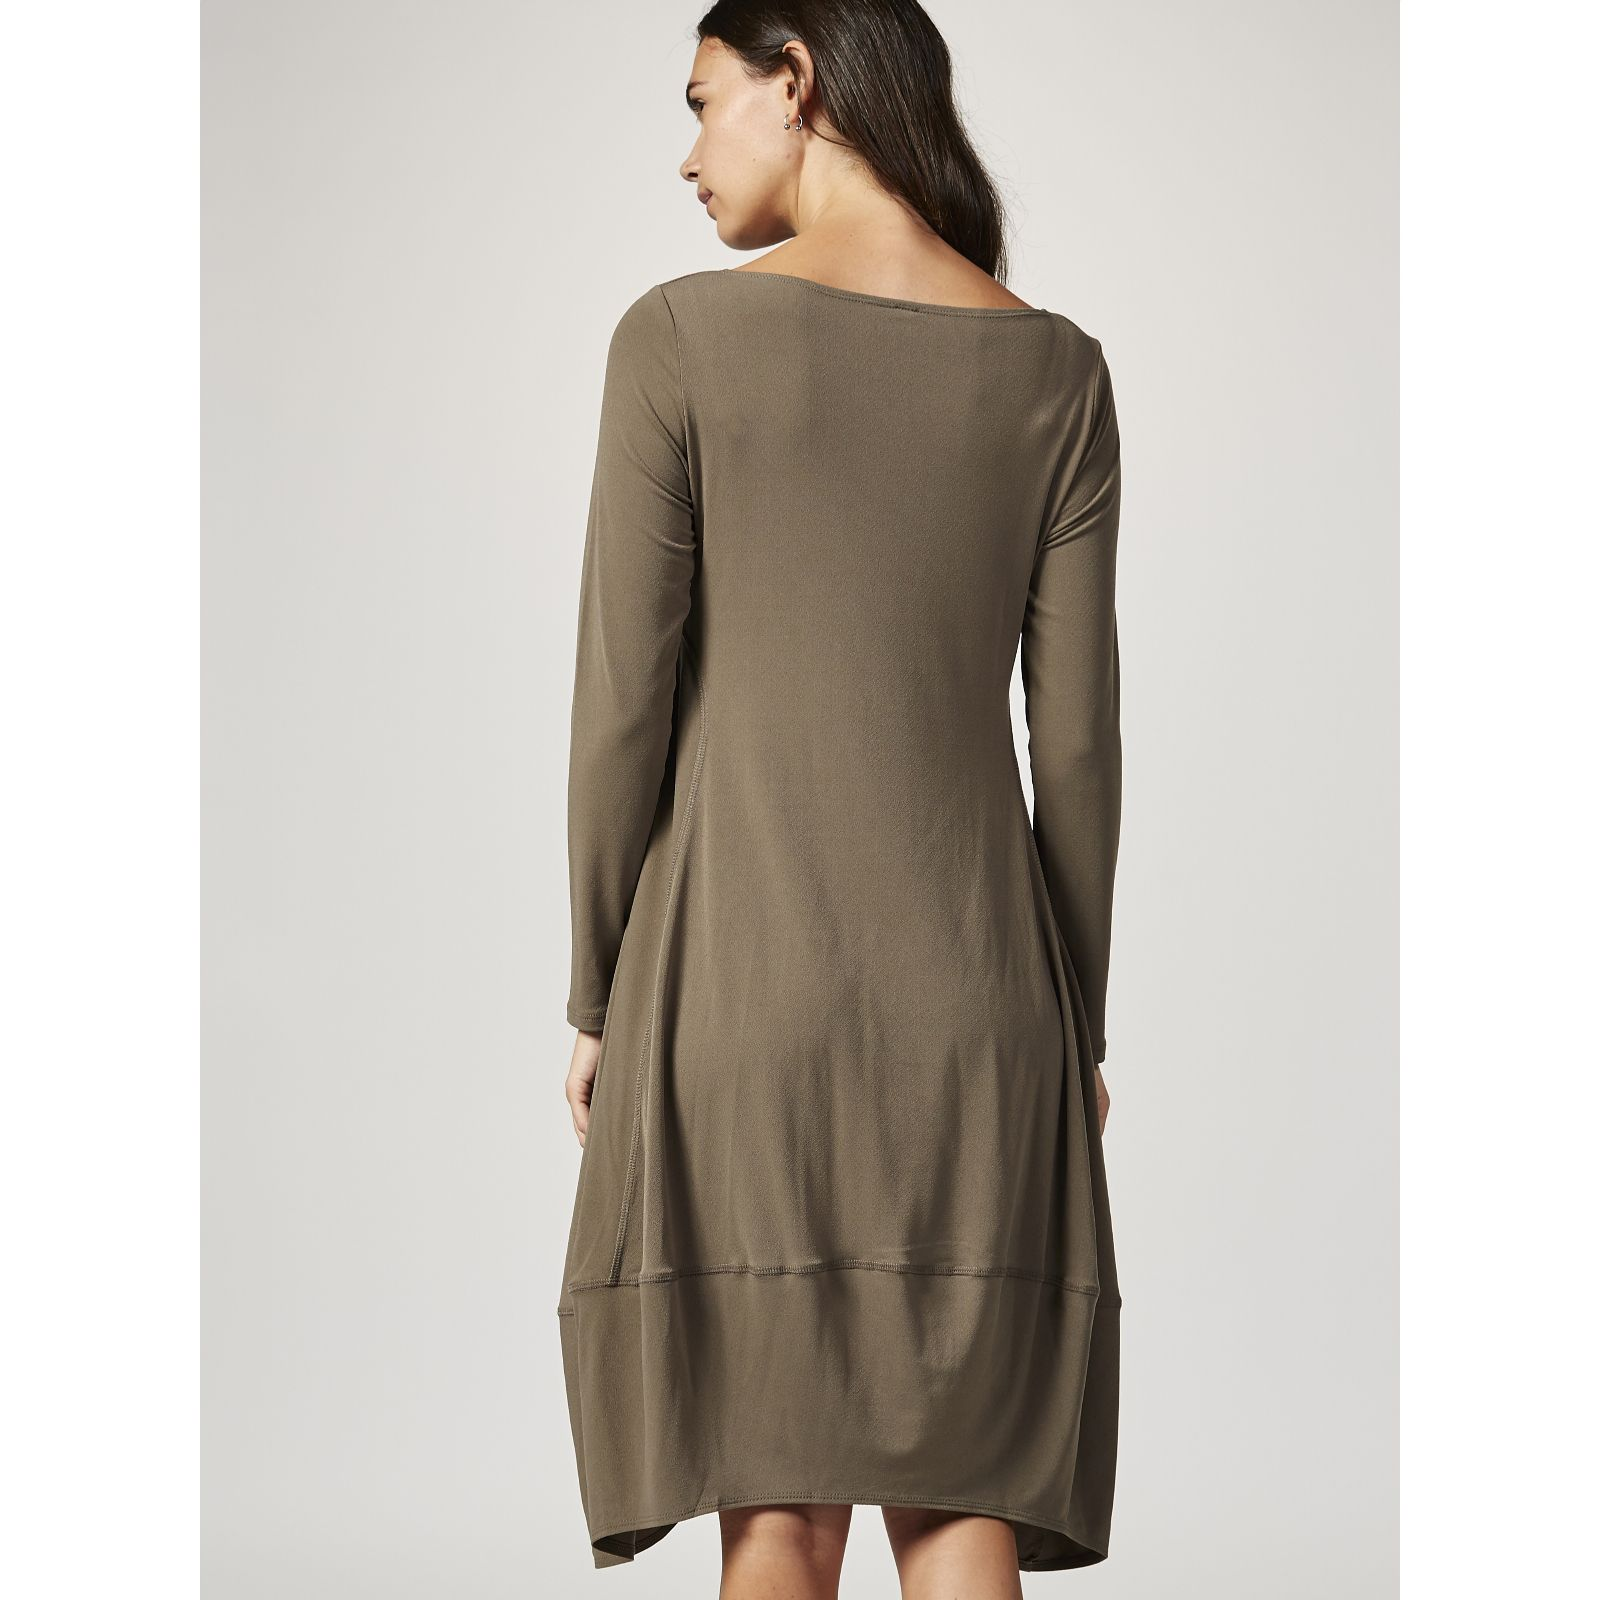 Marla wynne luxe crepe jersey scoop neck balloon dress pictures